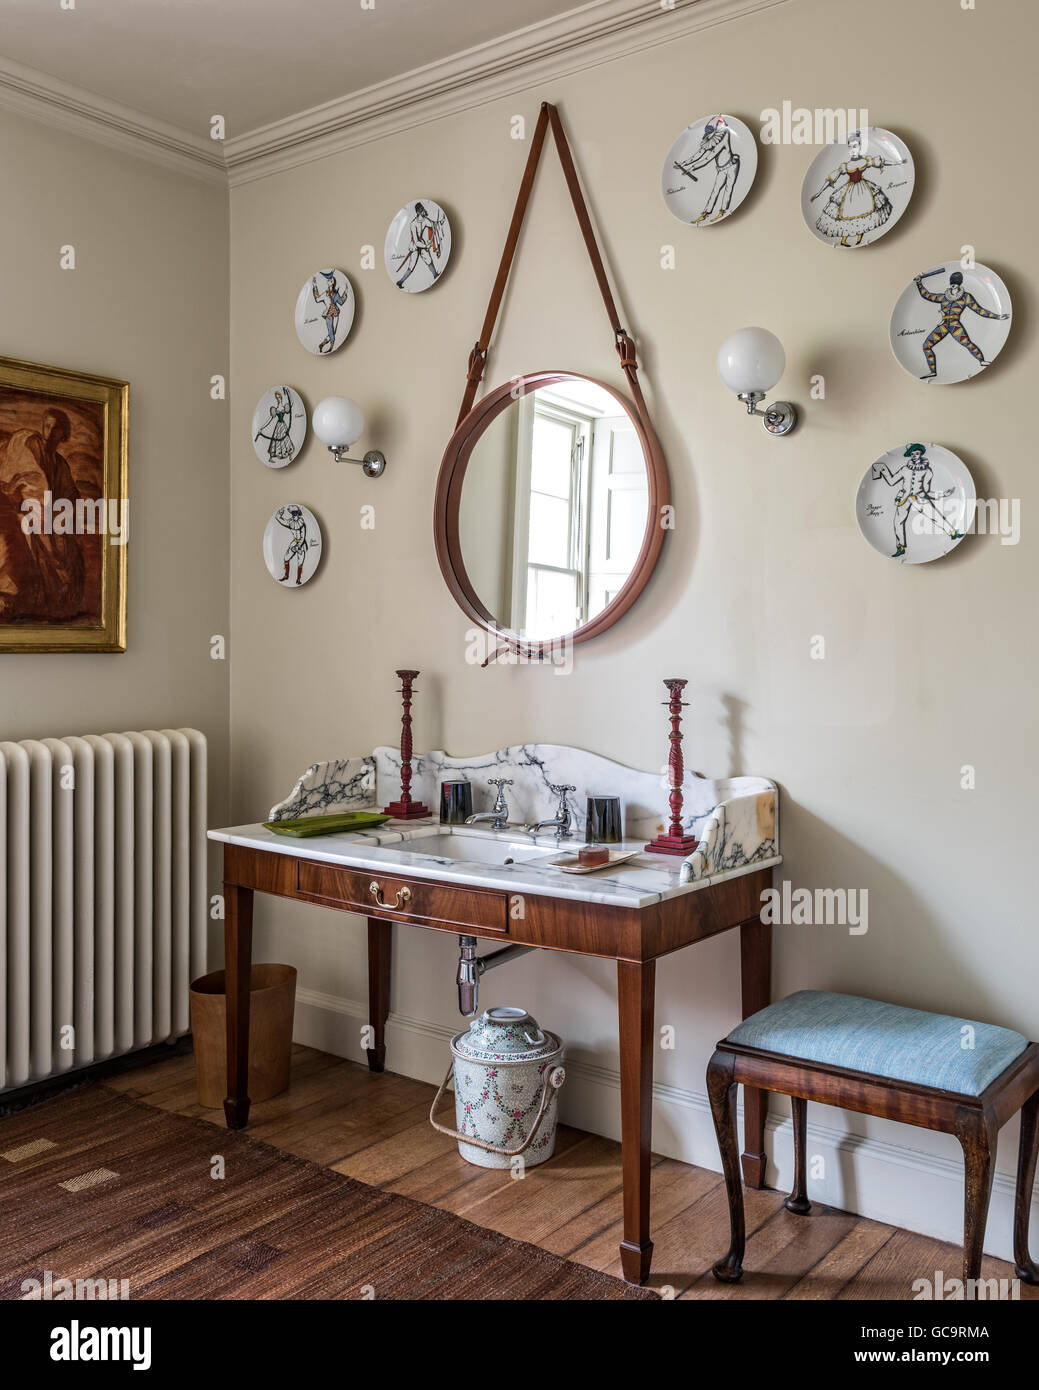 fornasetti harlequin plates on wall around a modern mirror from conran the marble topped vanity unit is made by nick coryndon